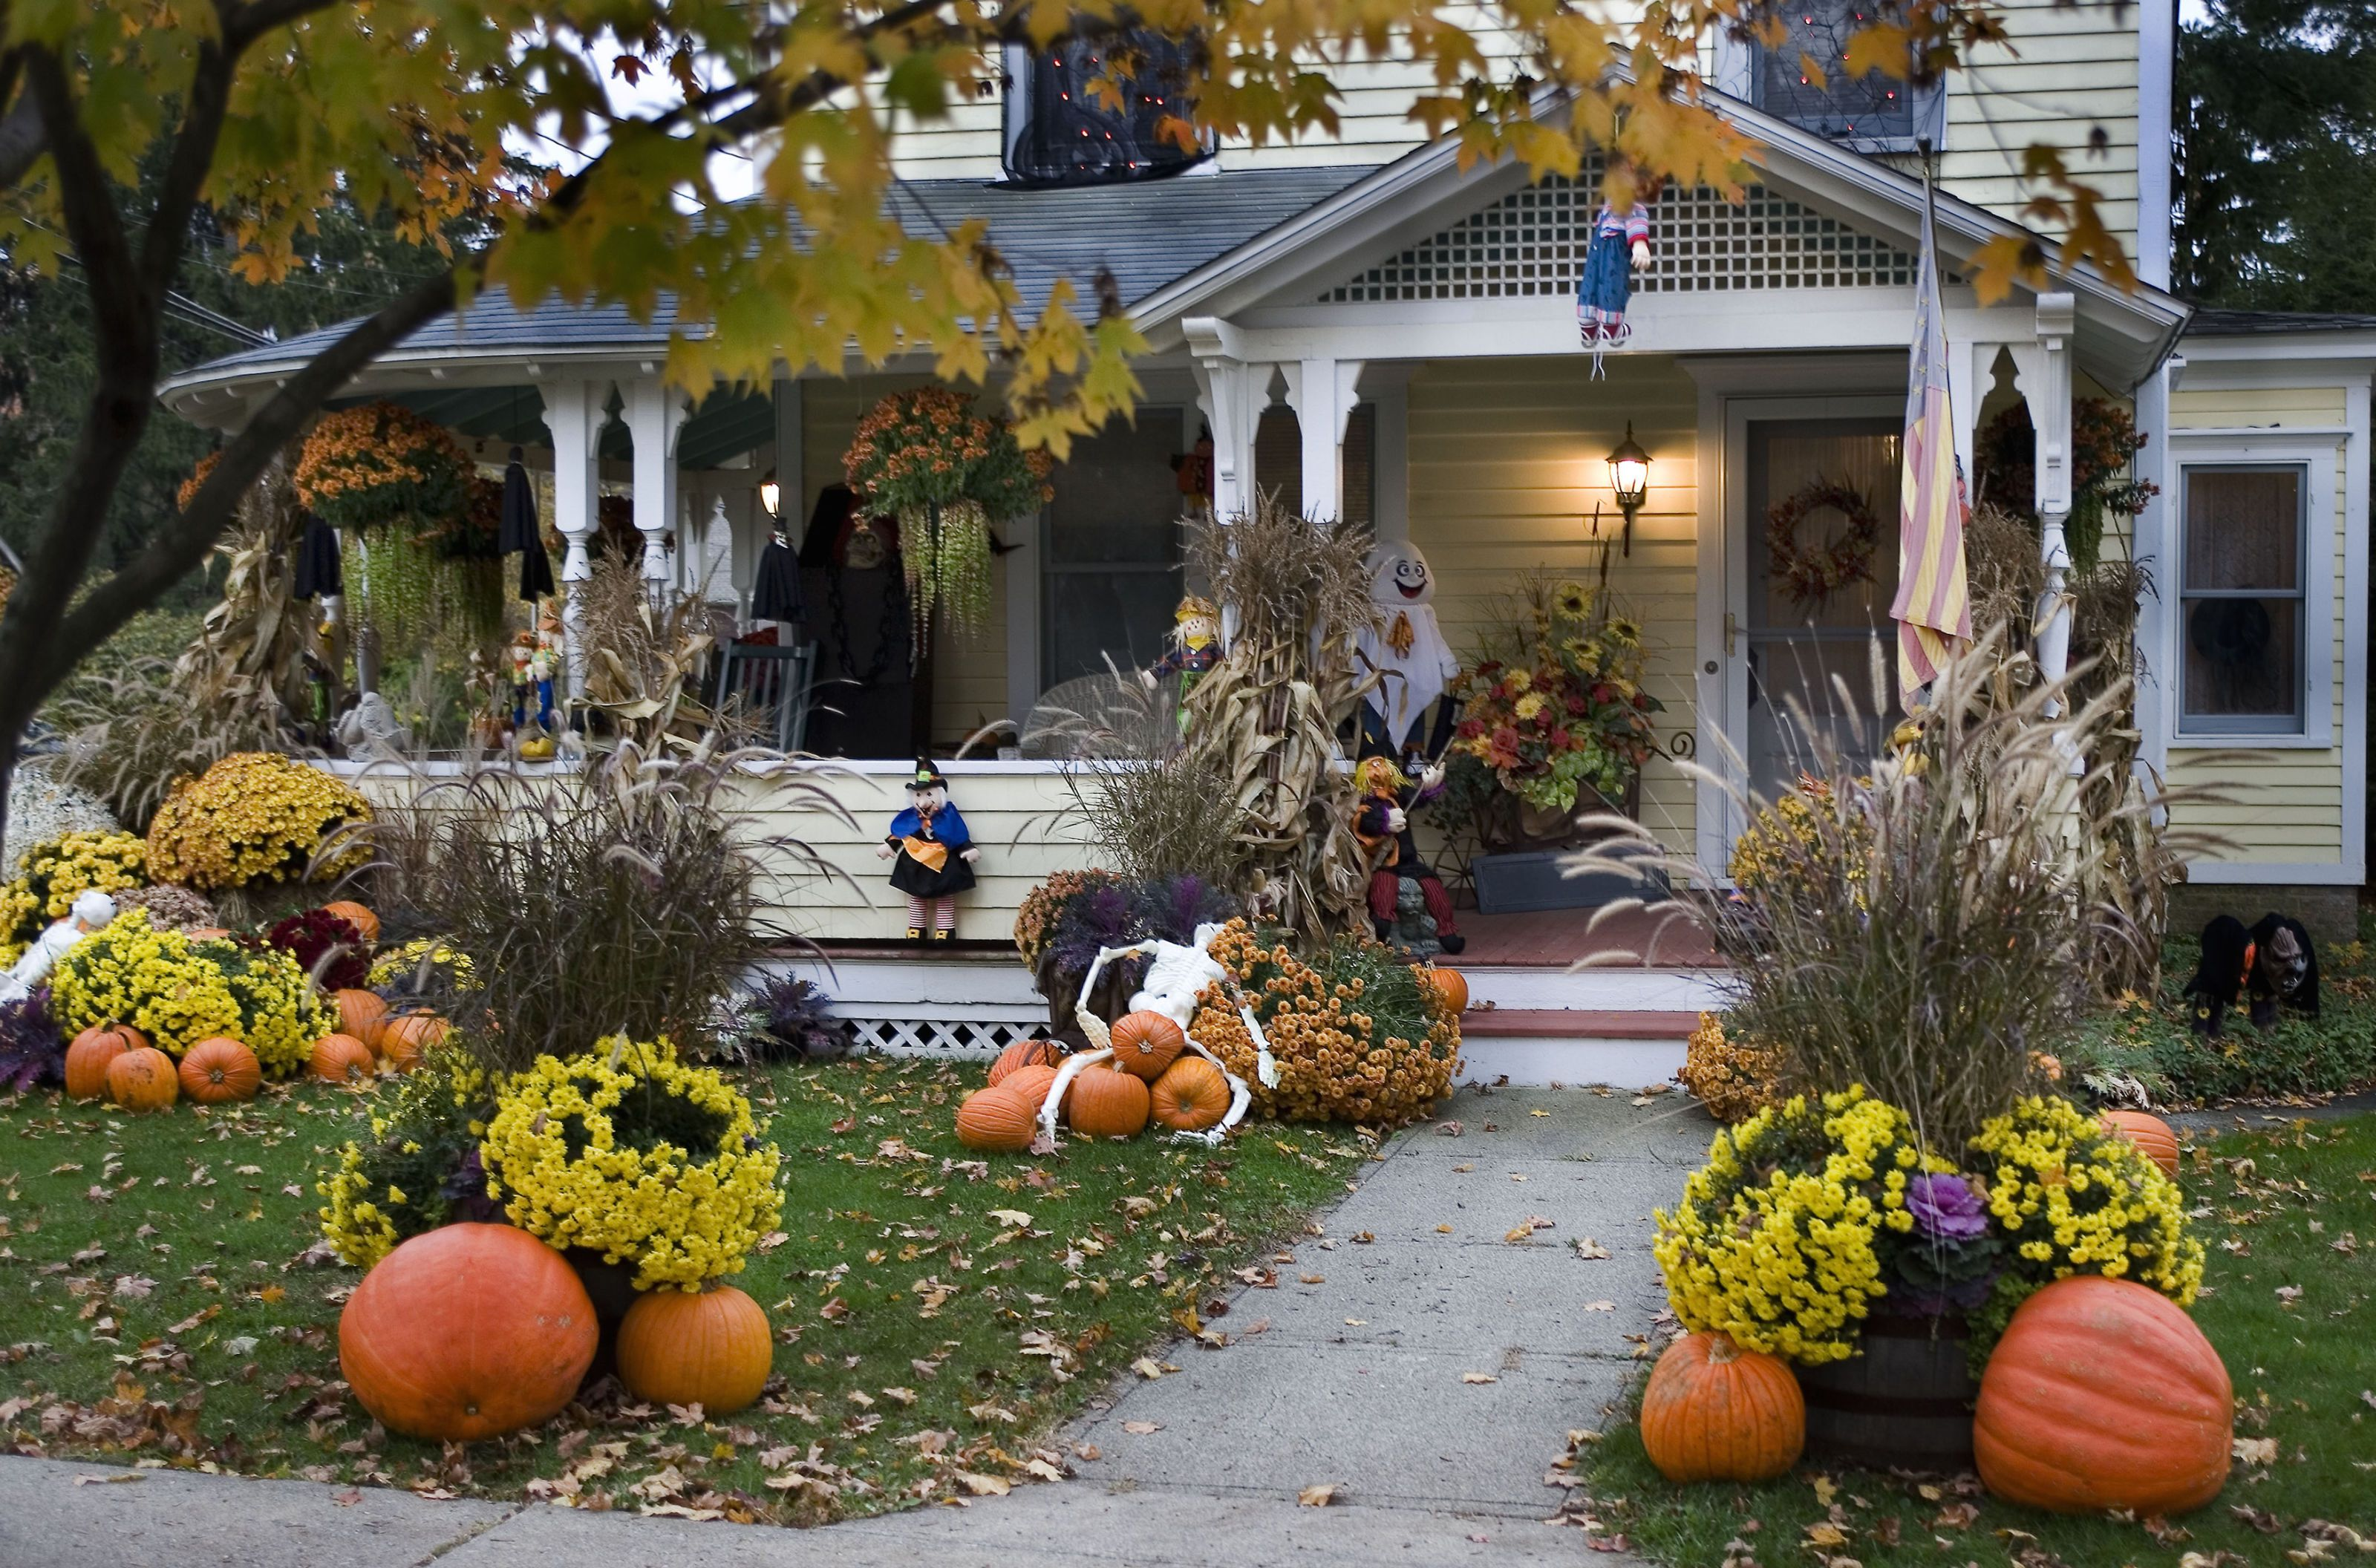 10 Best Outdoor Halloween Decorations , Porch Decor Ideas